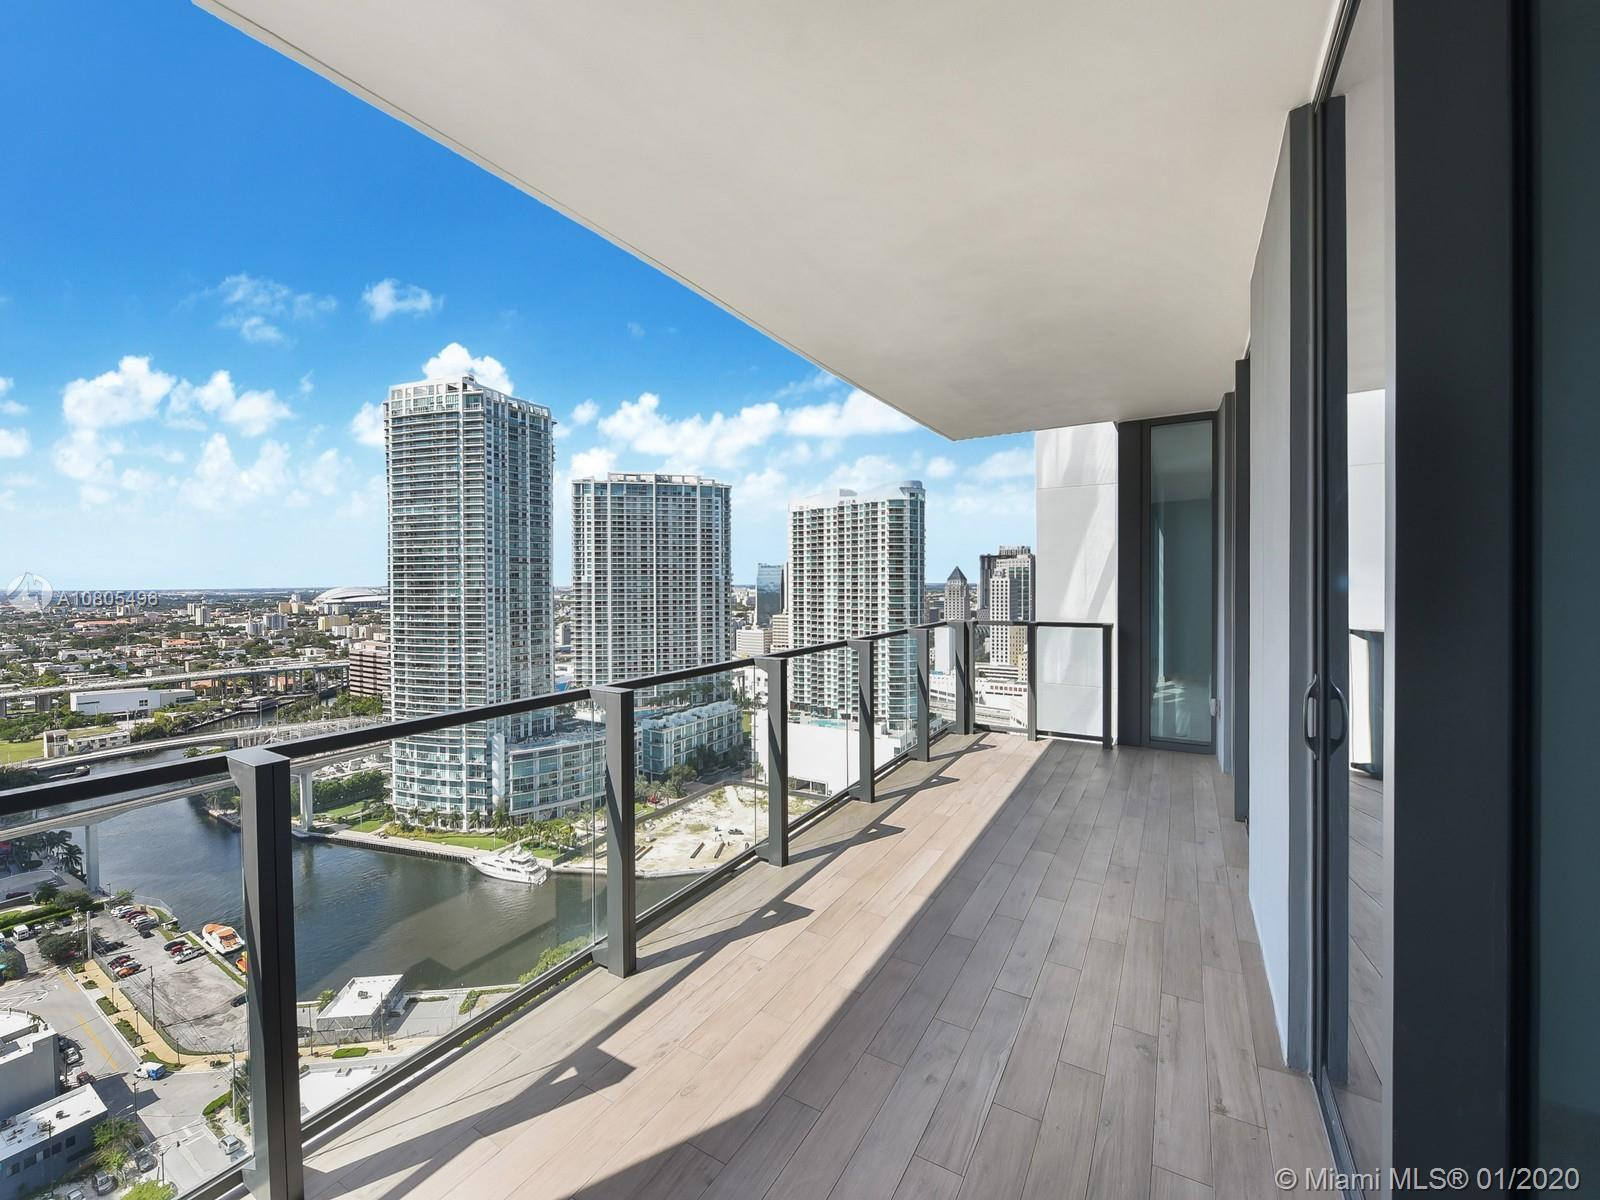 Be part of the Exclusive Reach at Brickell City Centre. This 2 bed/ 2 baths apartment features sophi